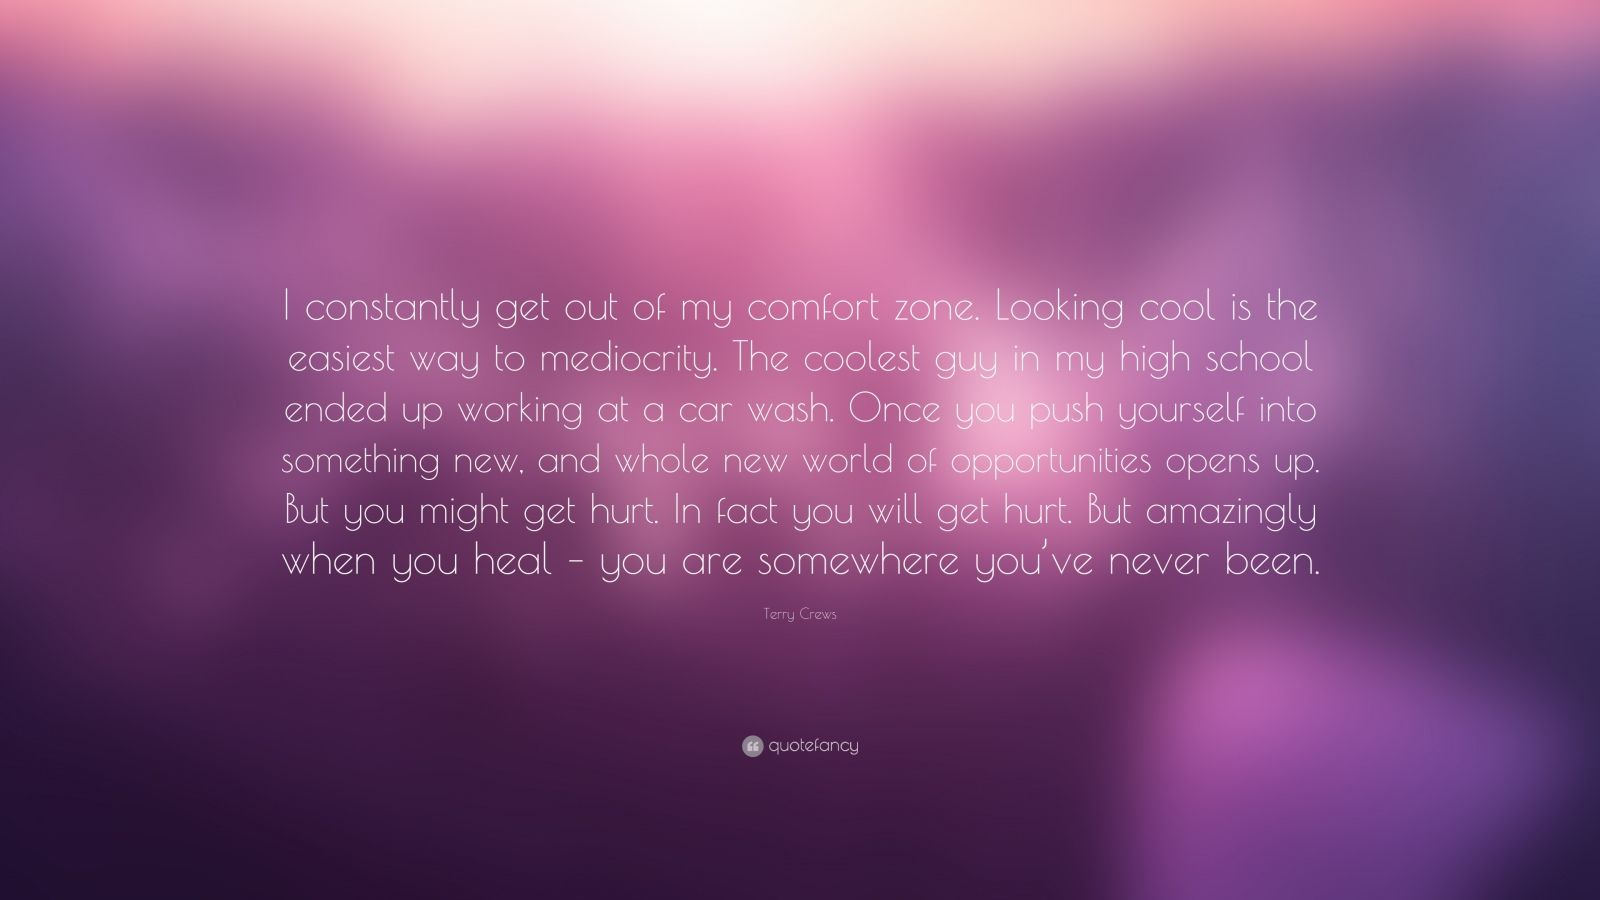 """Terry Crews Quote: """"I constantly get out of my comfort zone. Looking cool is the easiest way to mediocrity. The coolest guy in my high school ended up working at a car wash. Once you push yourself into something new, and whole new world of opportunities opens up. But you might get hurt. In fact you will get hurt. But amazingly when you heal – you are somewhere you've never been."""""""